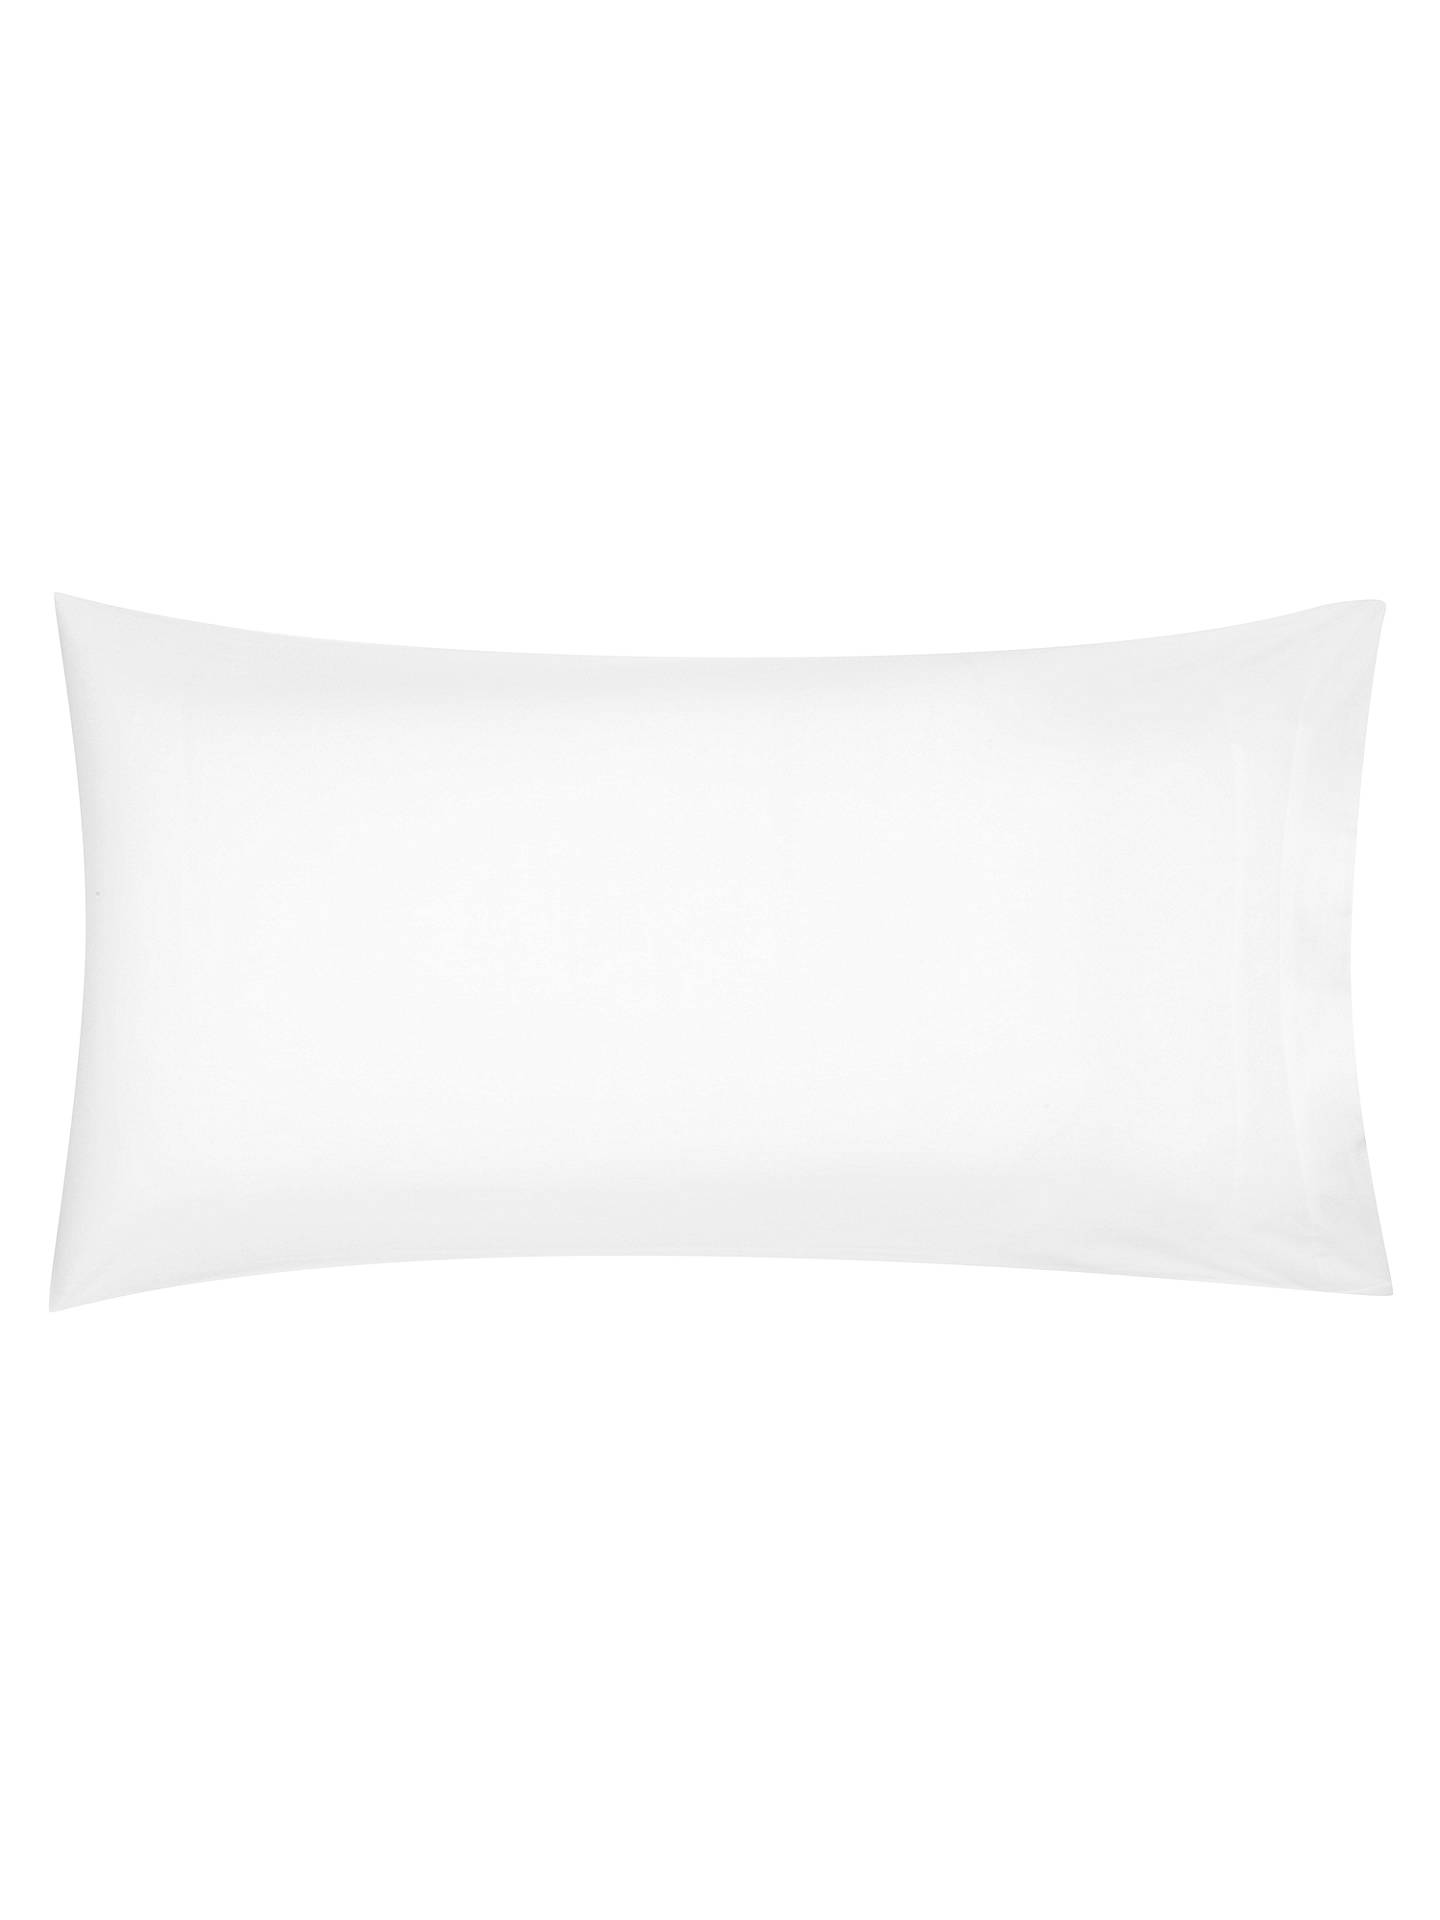 BuyJohn Lewis & Partners Premium Brushed Cotton Duvet Cover, Single, White Online at johnlewis.com